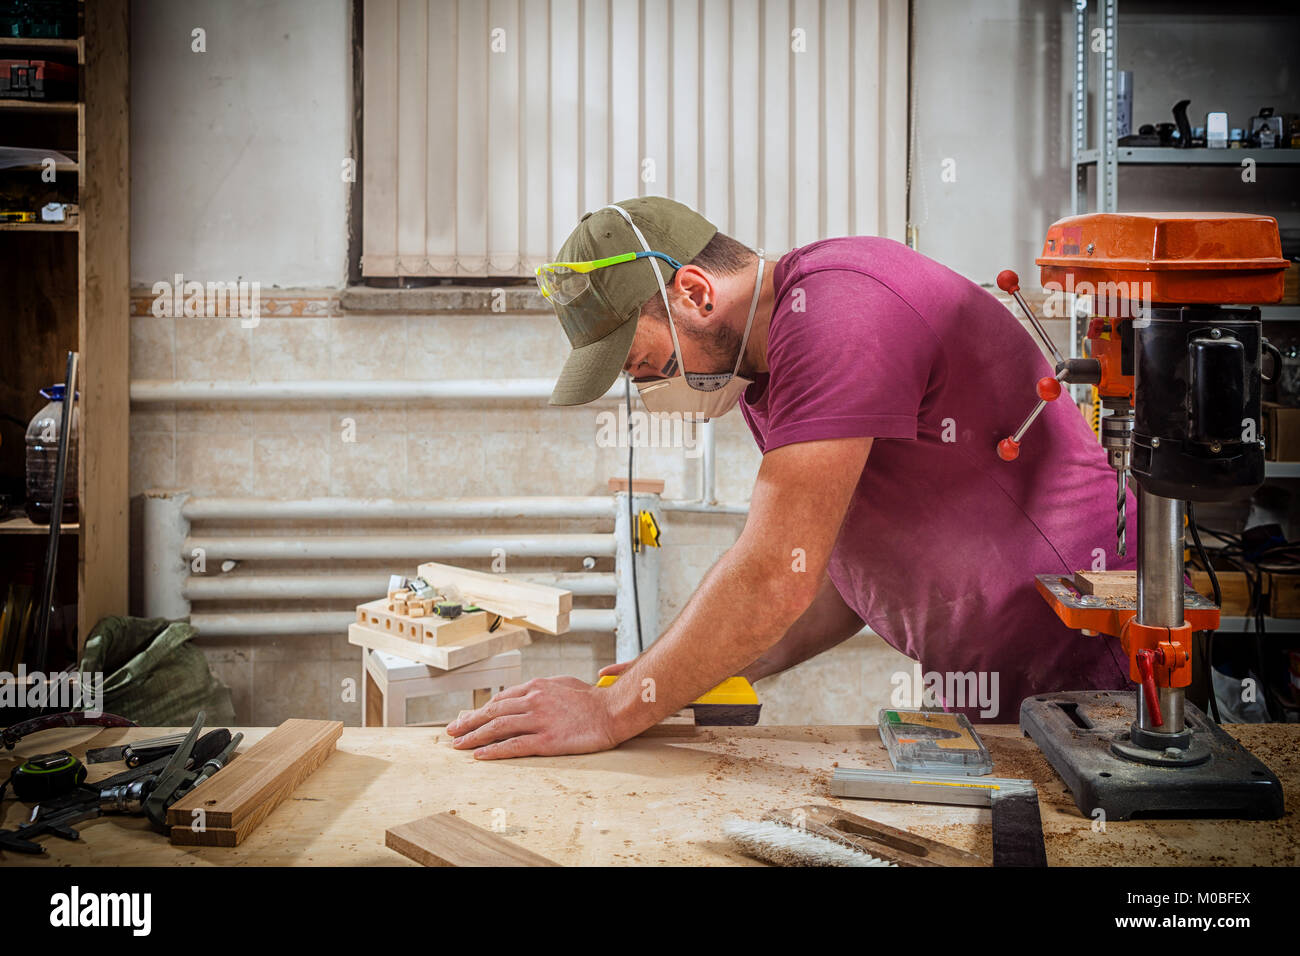 A young strong man builder carpenter works with a wooden bar for making furniture, measures and cuts in the workshop, Stock Photo